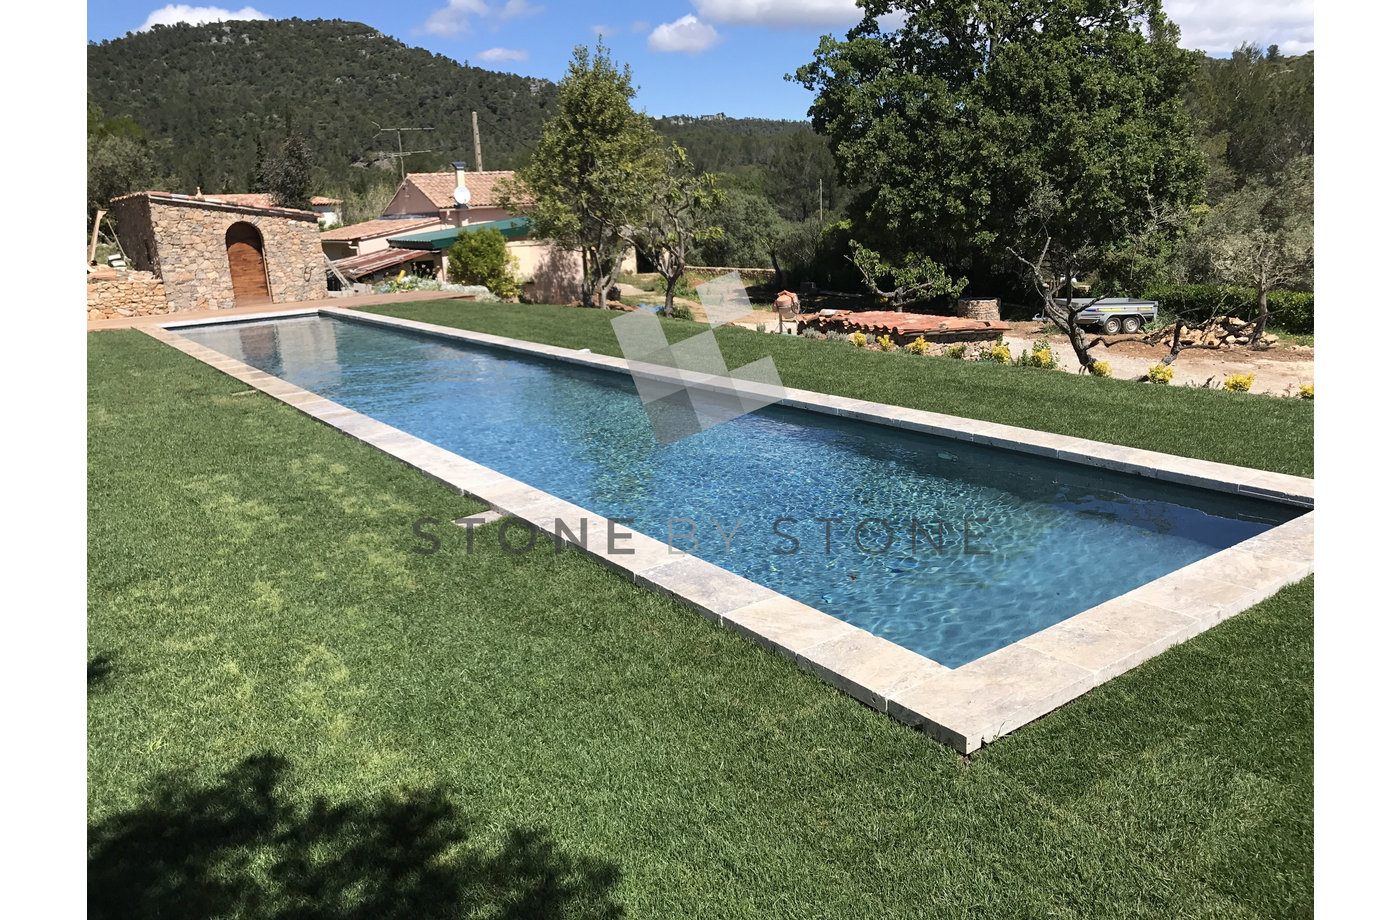 Margelle de Piscine Grise Pierre travertin bord droit - 40x80/8cm